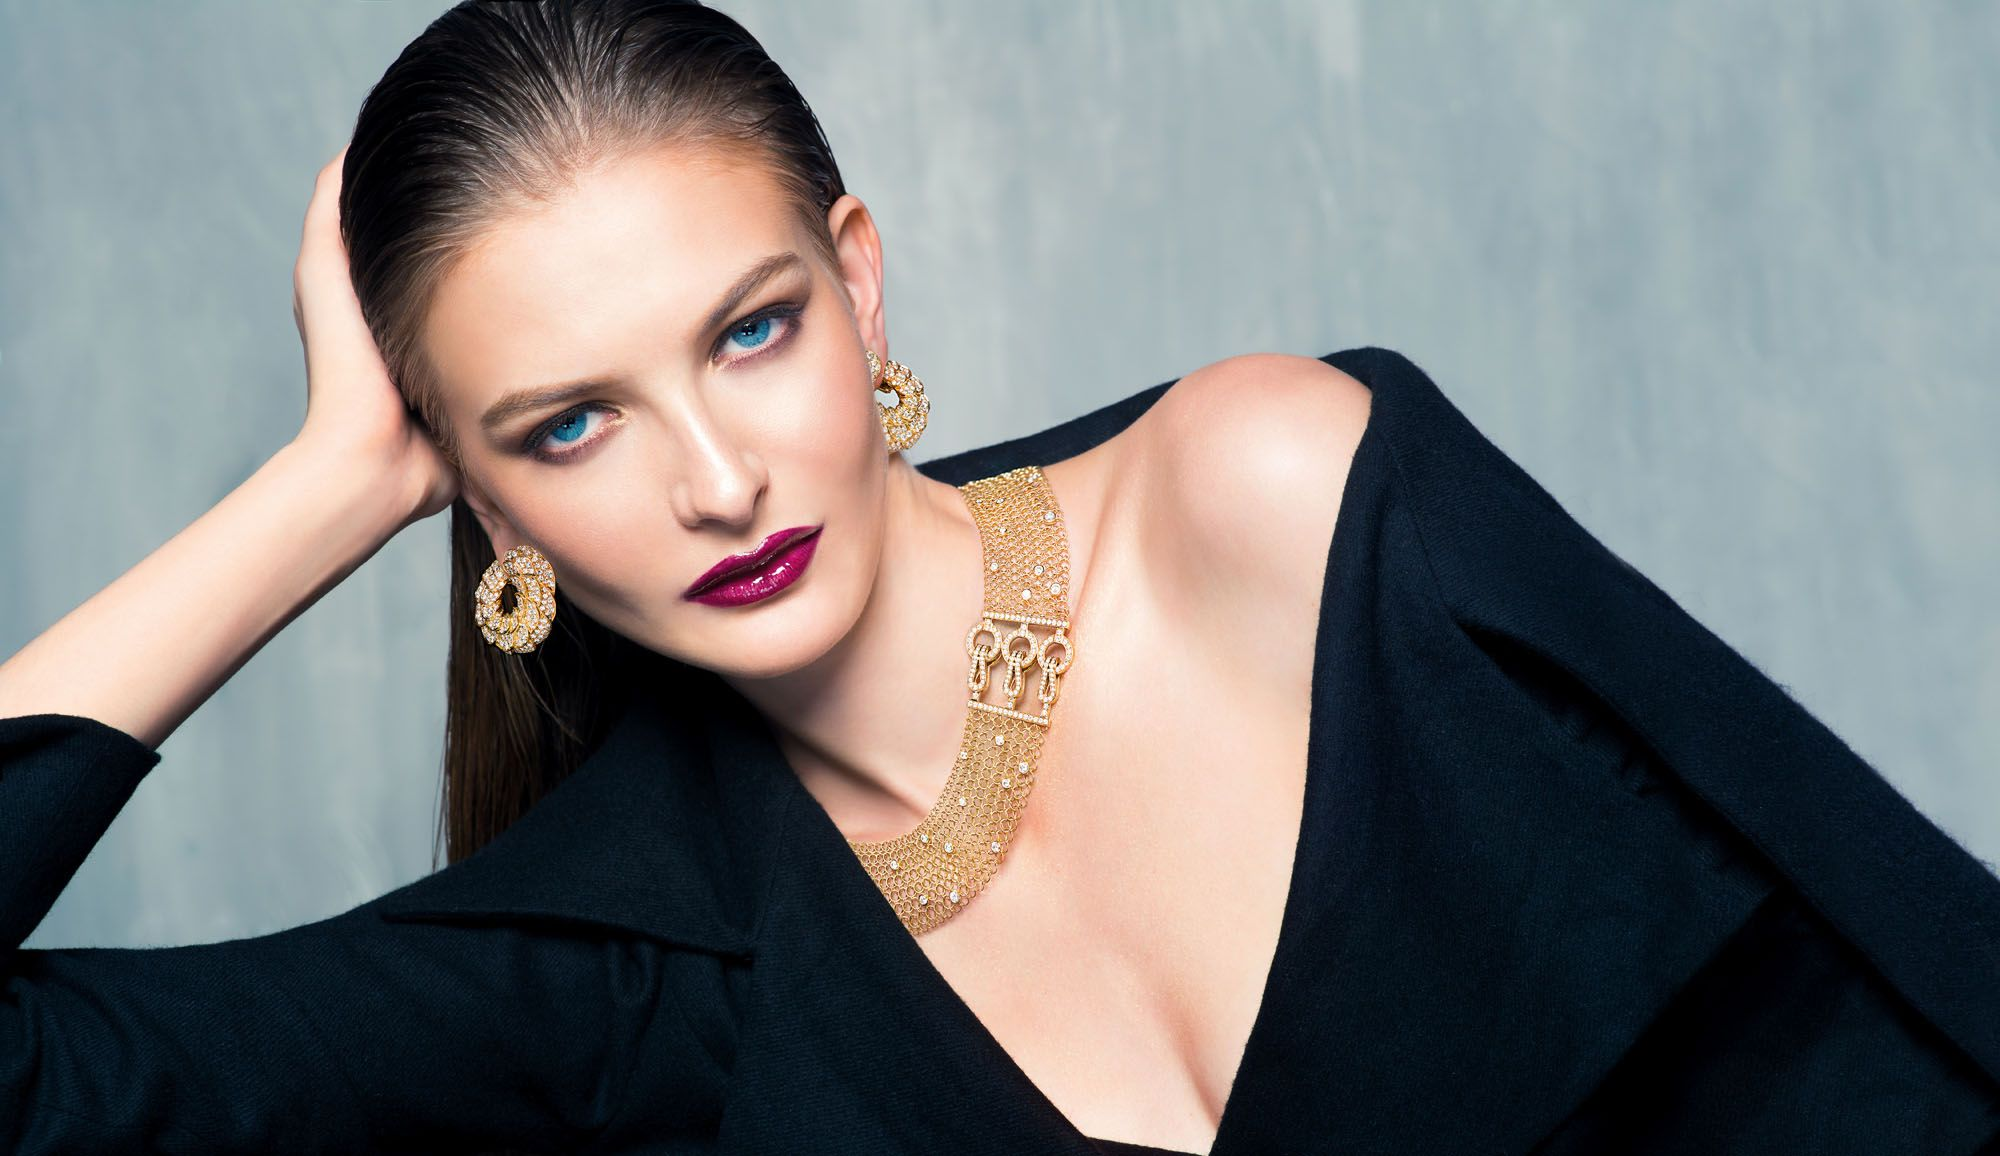 CLASS ACT: Earrings in yellow gold set with diamonds, and a necklace in pink gold set with diamonds, both by Cartier; coat by P'IA